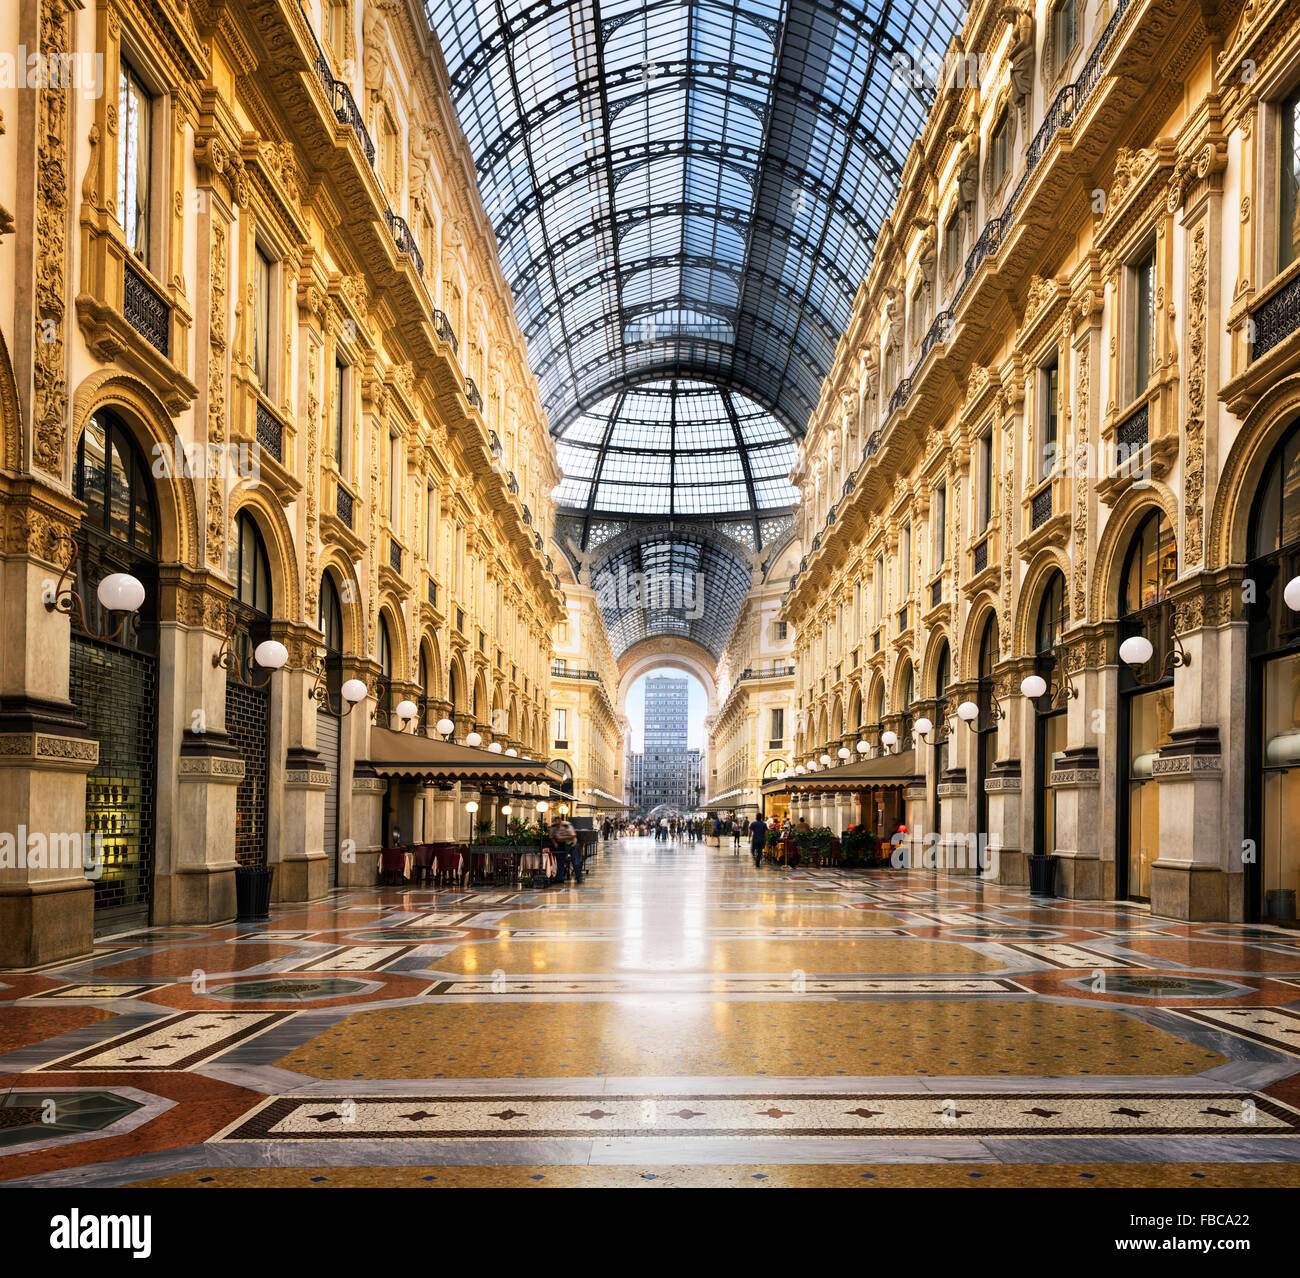 Glass dome of Galleria Vittorio Emanuele in Milan, Italy - Stock Image